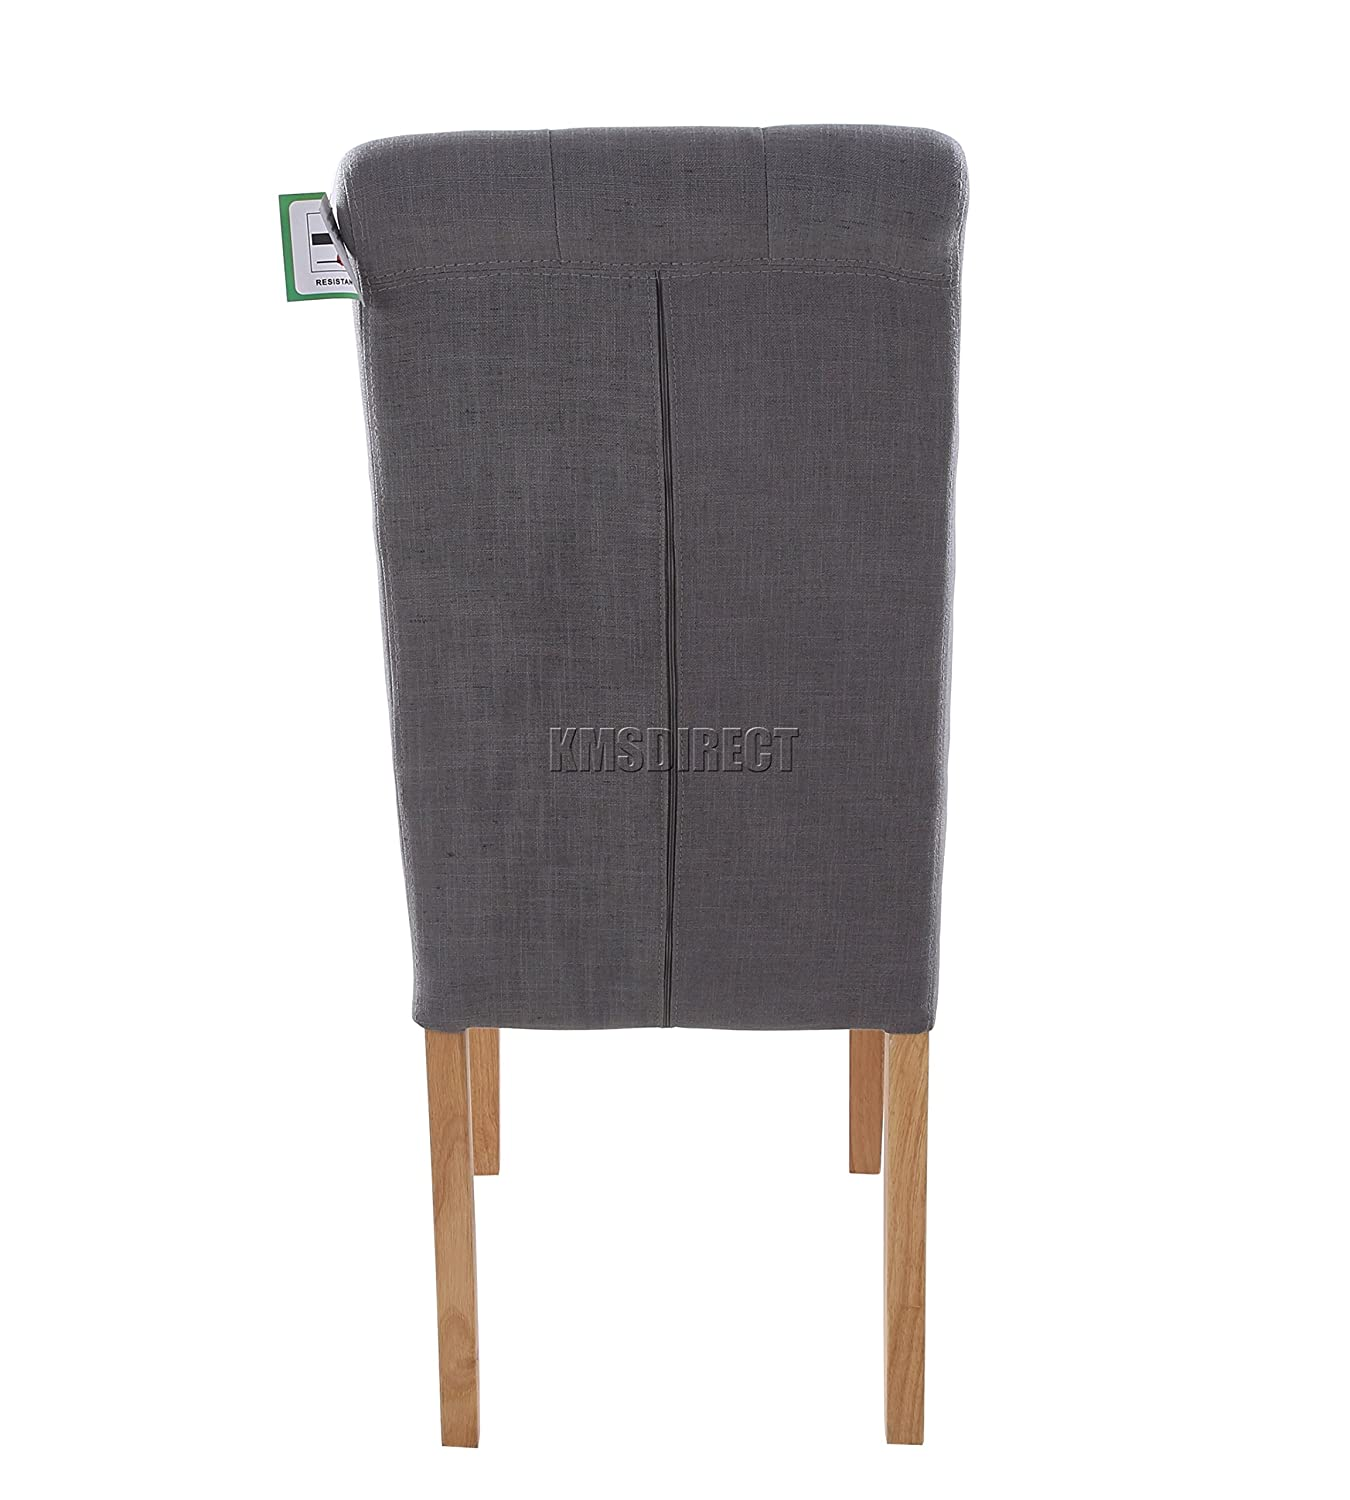 foxhunter furniture set of  premium grey linen fabric dining  - foxhunter furniture set of  premium grey linen fabric dining chairs rolltop scroll high back with solid wood legs seat contemporary modern lookdcf